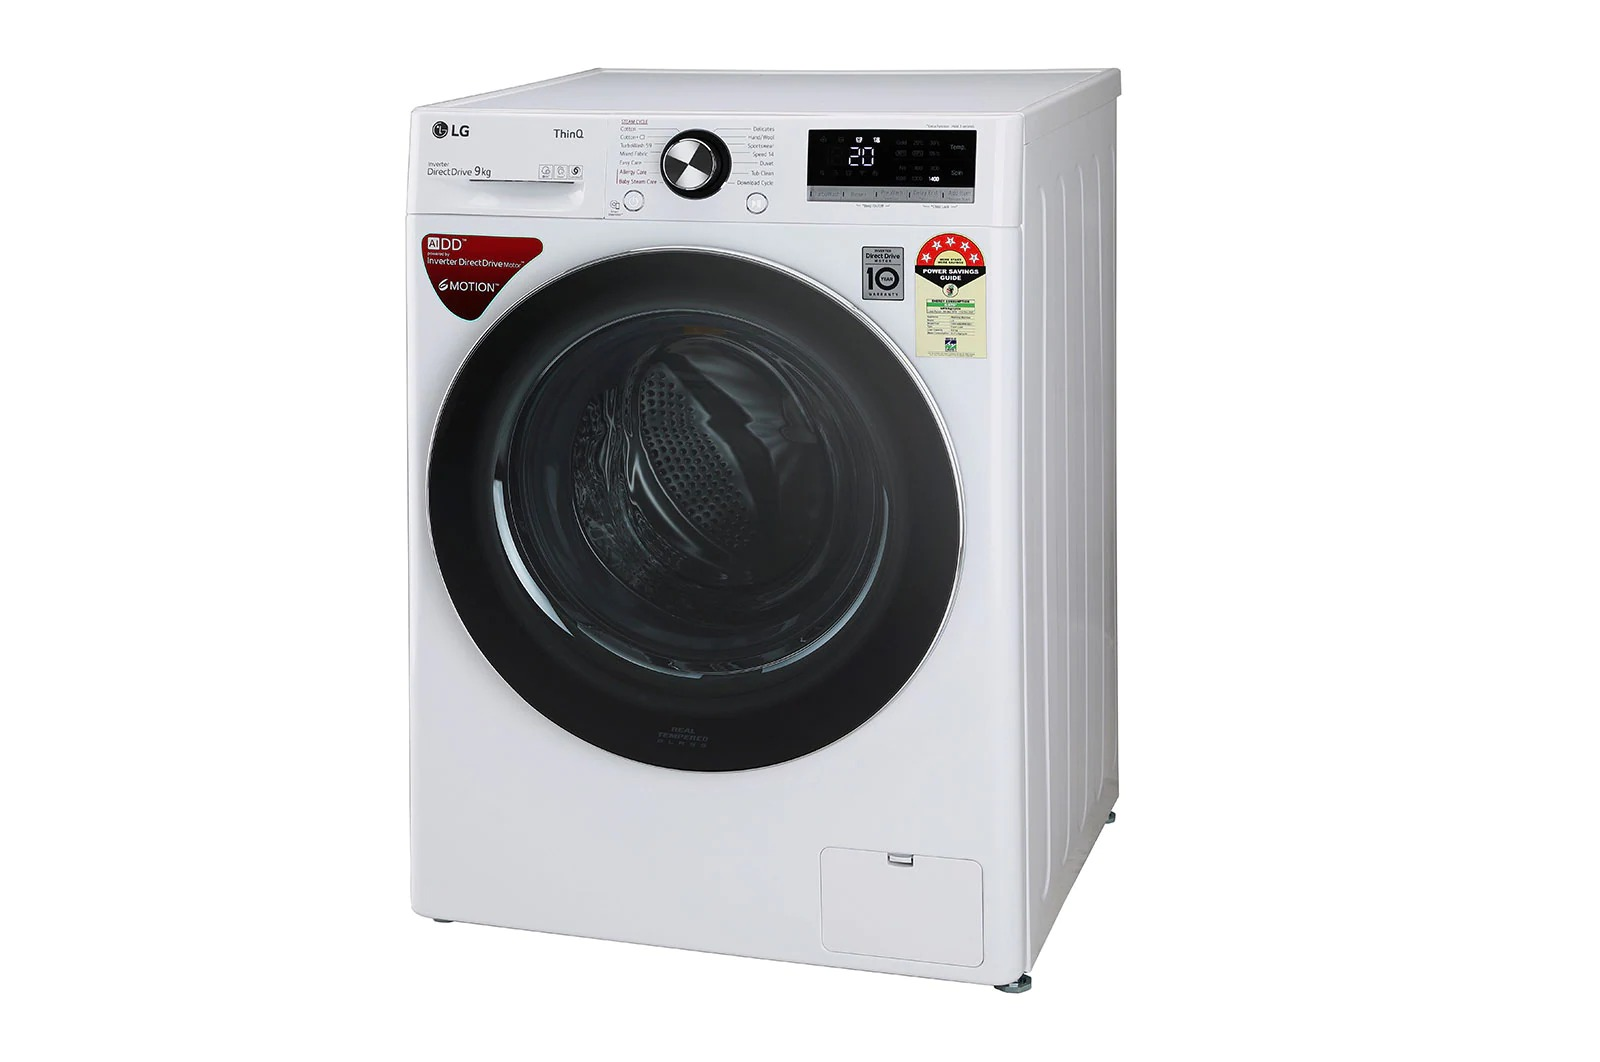 LG (FHV1409ZWW) 9.0Kg, AI Direct Drive™ Washer With Steam™ & TurboWash™